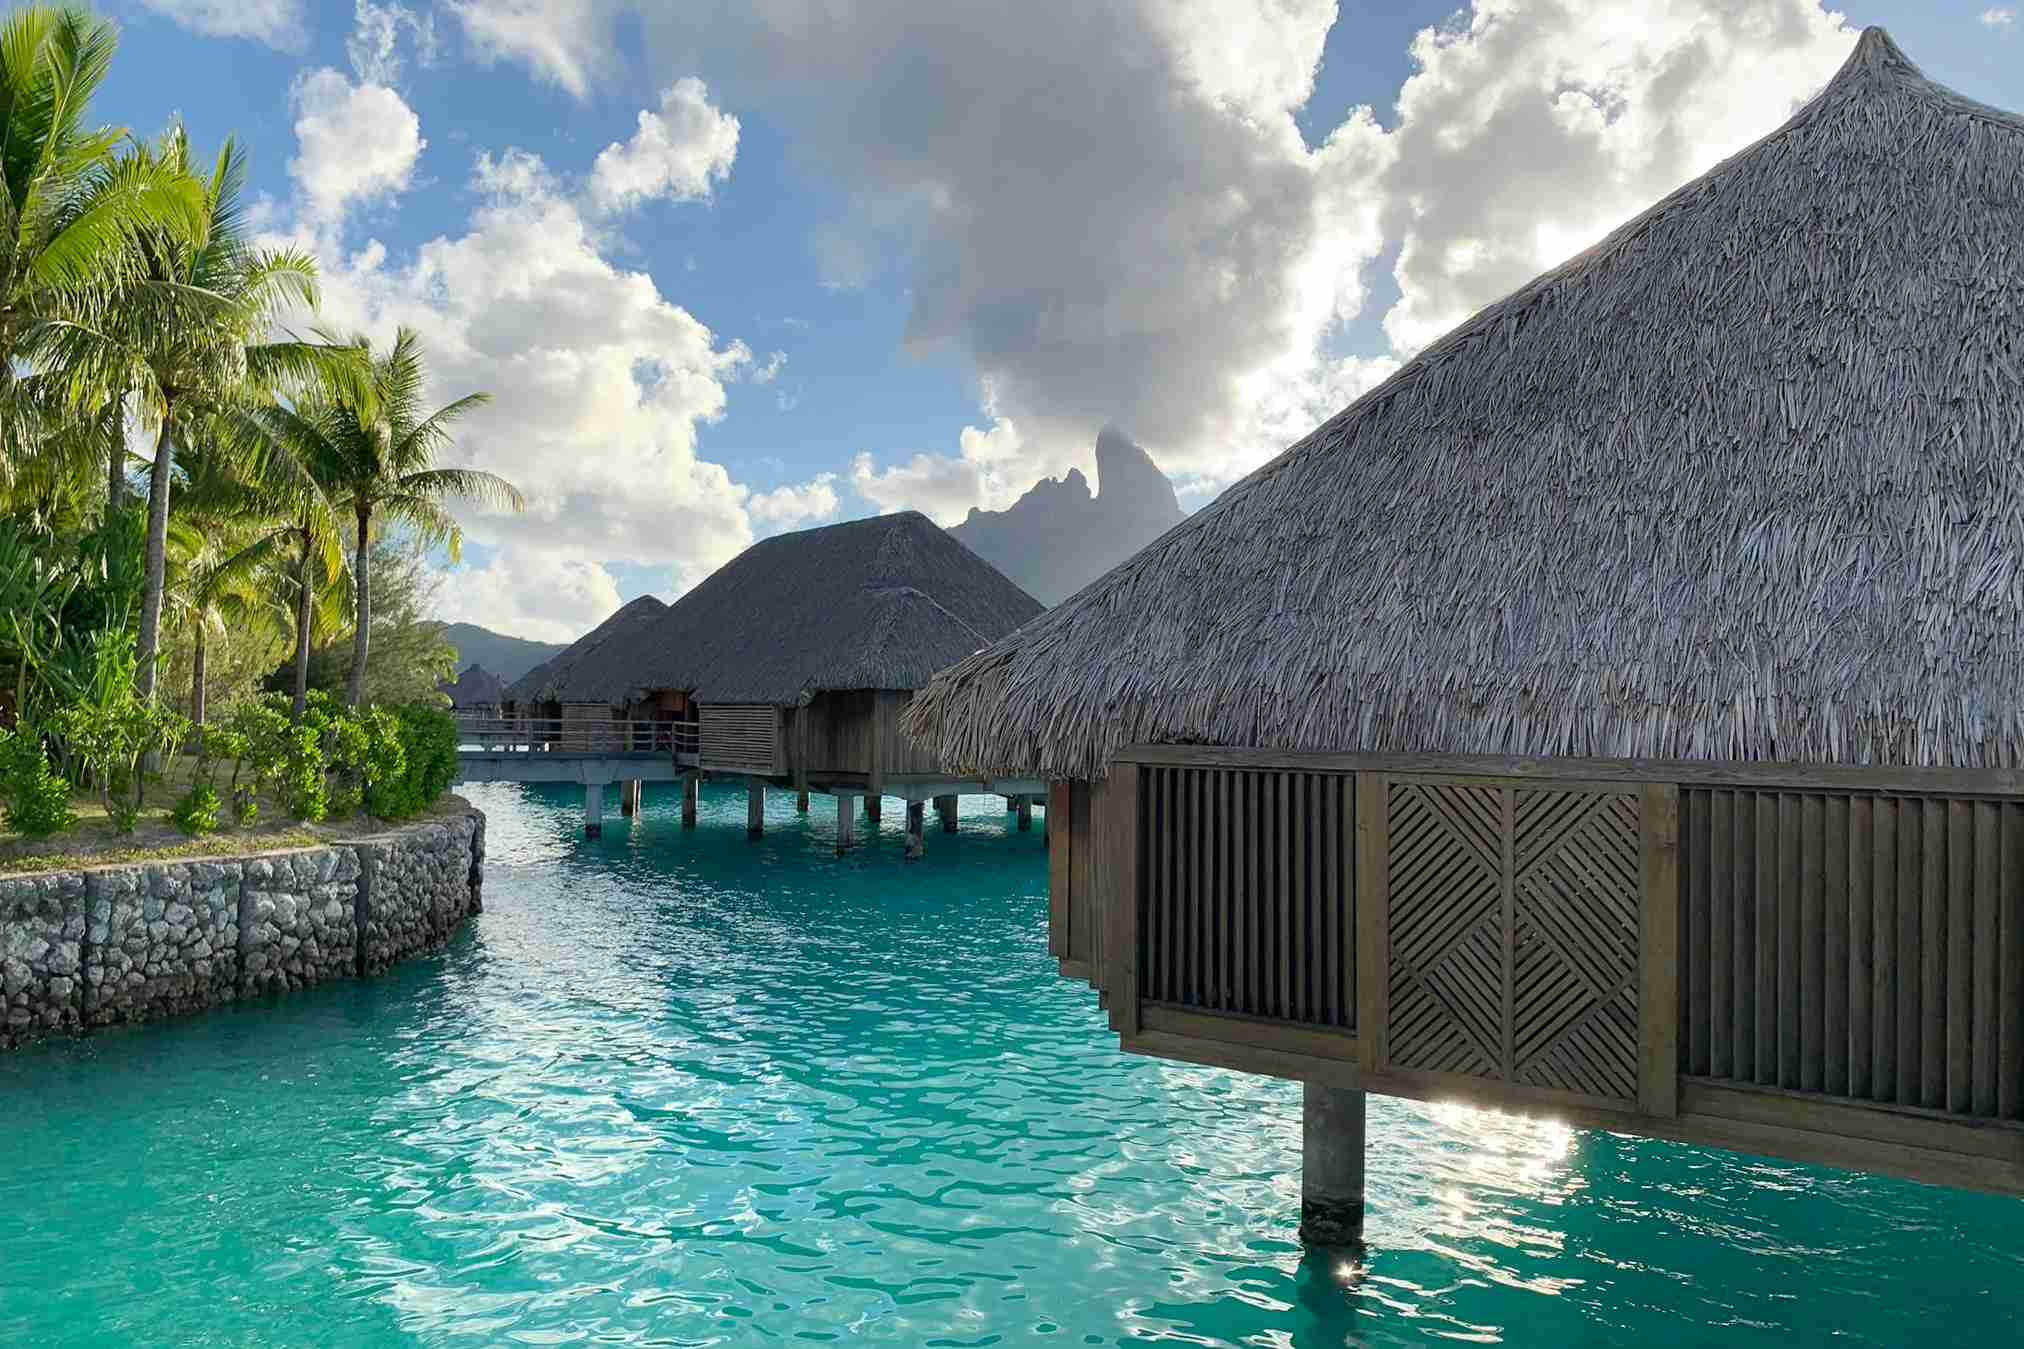 The St. Regis Bora Bora. Photo by Zach Honig / The Points Guy.